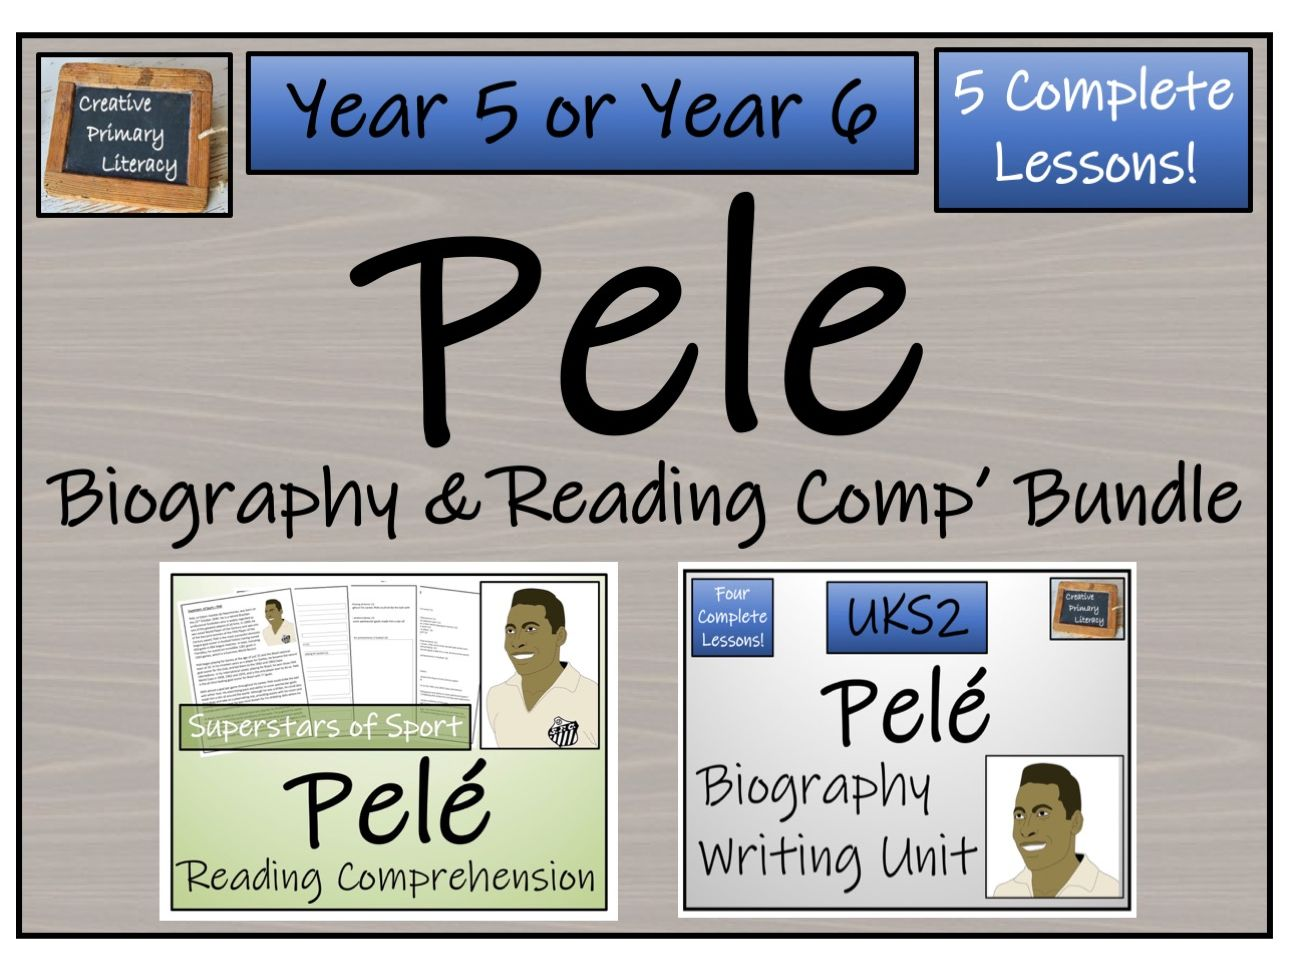 UKS2 Literacy - Pele Reading Comprehension & Biography Bundle